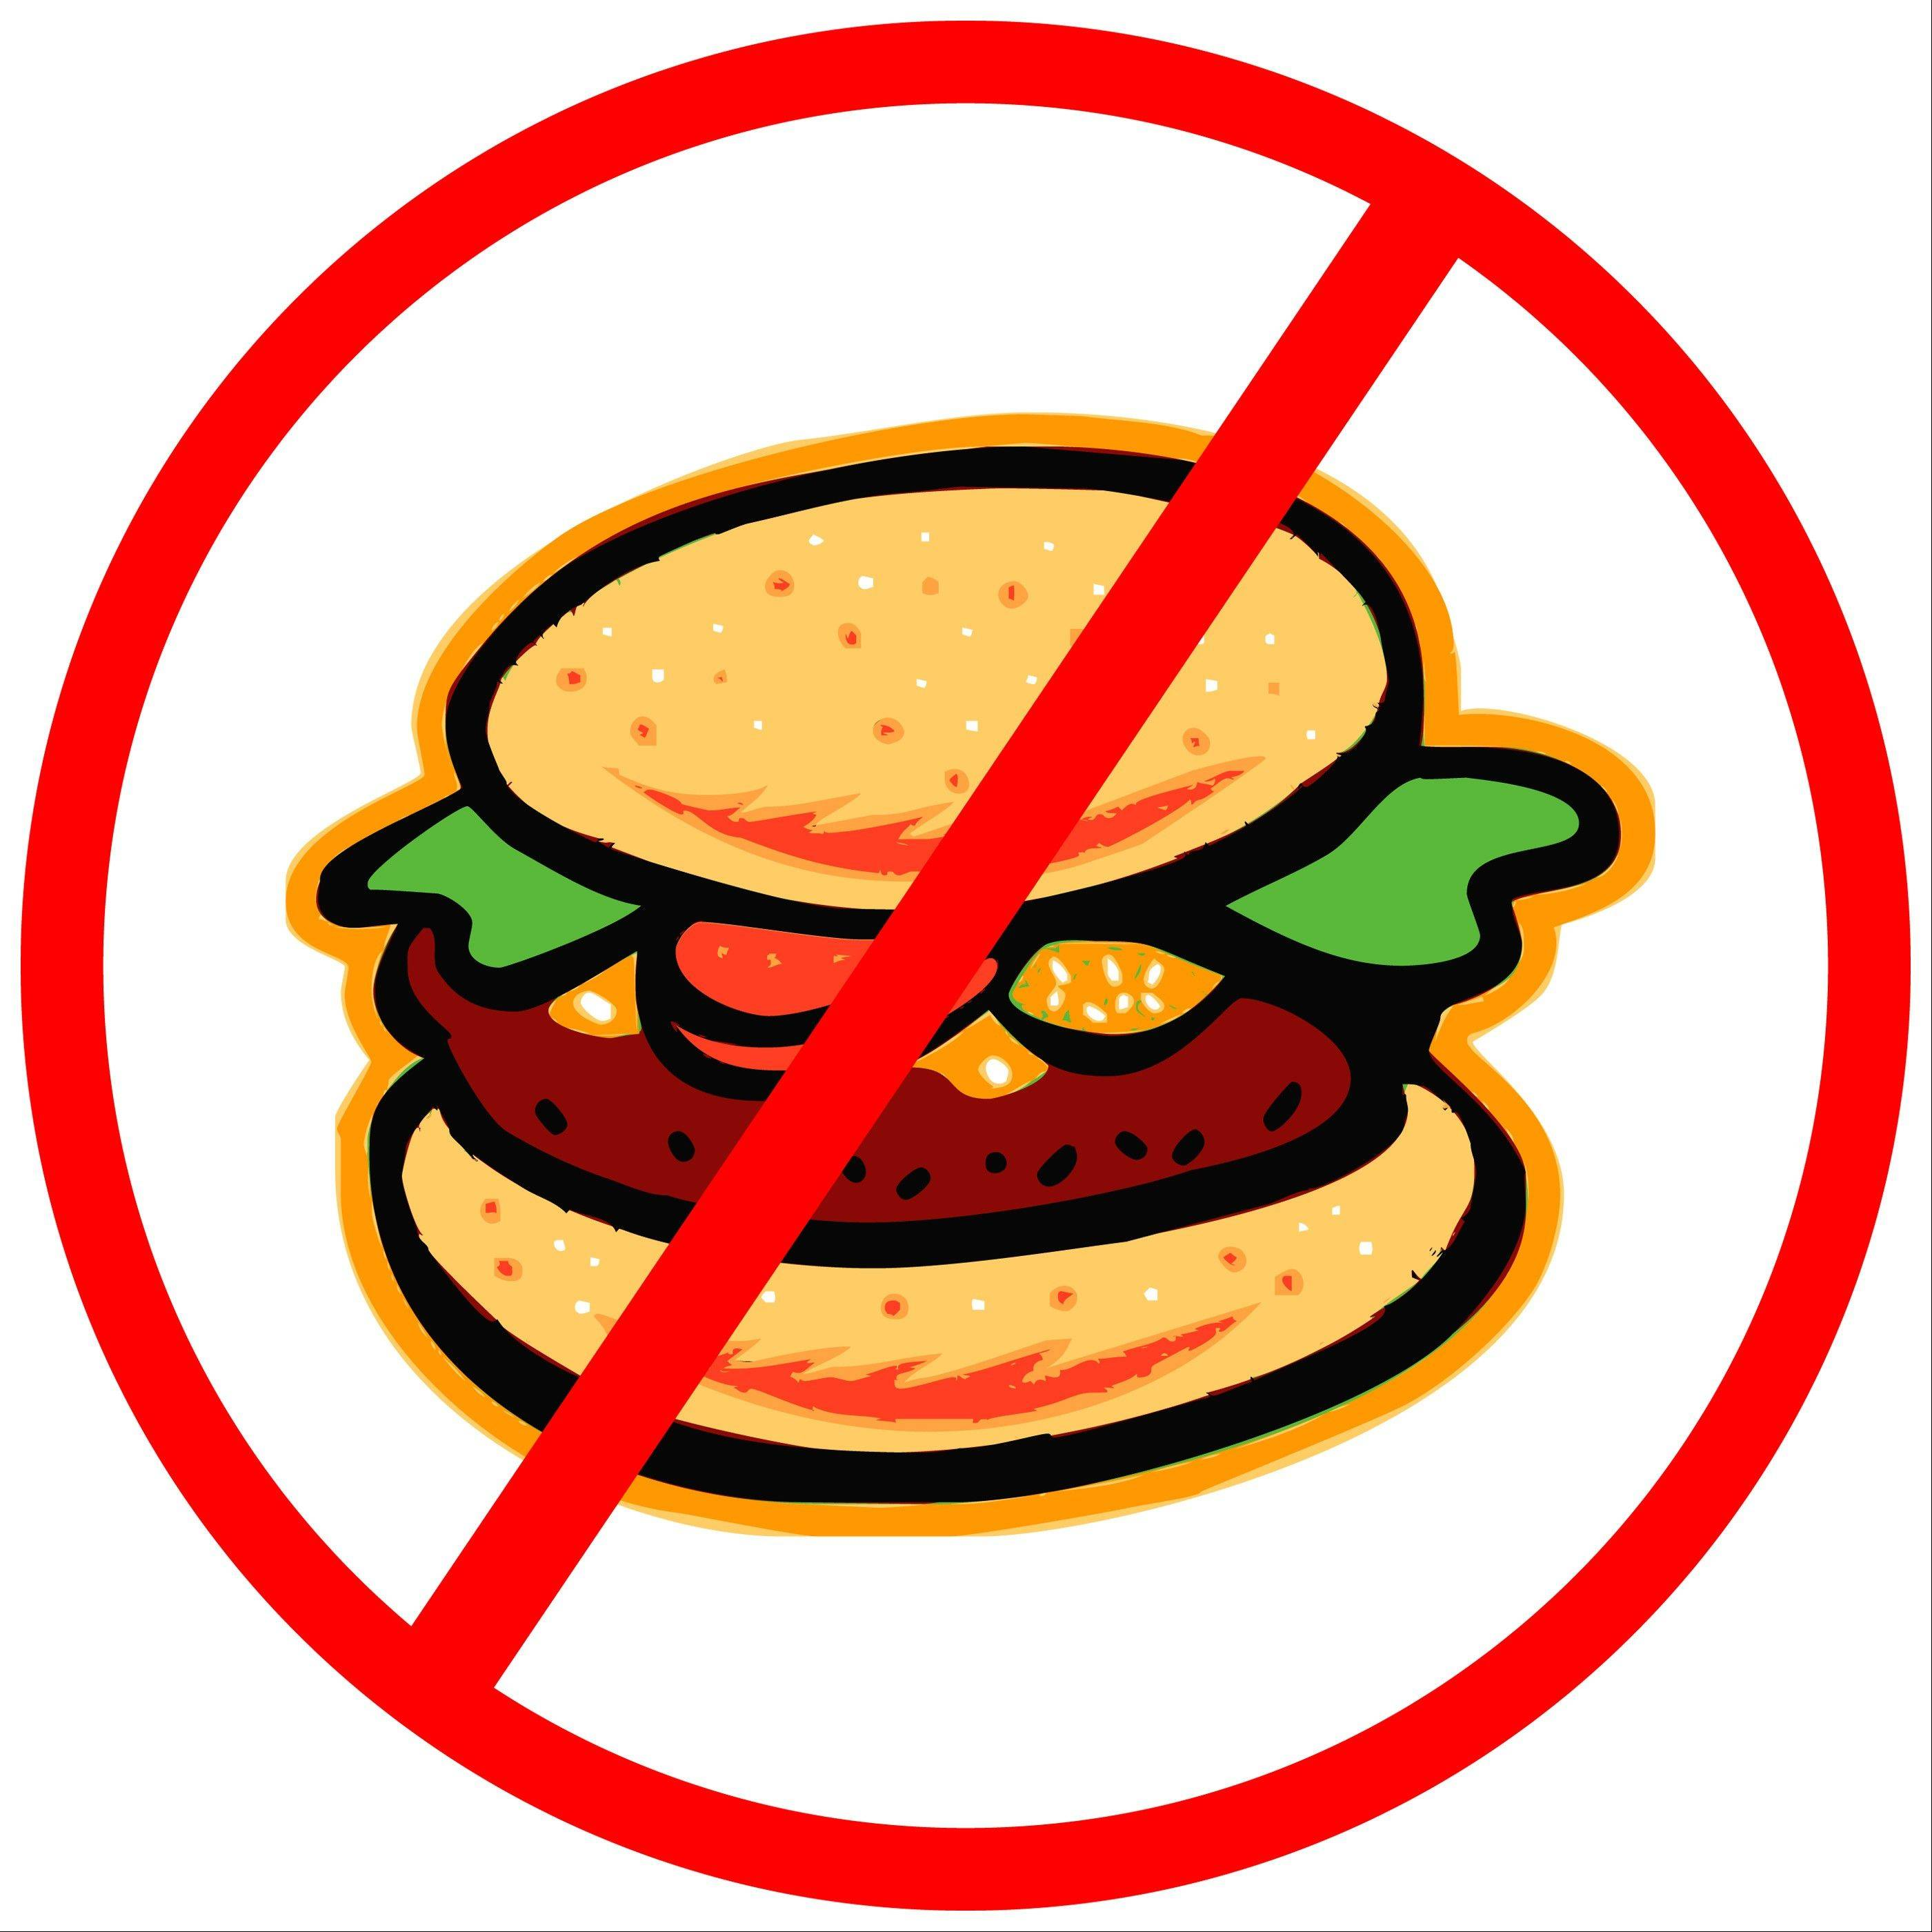 fast food who is to blame in the article the battle against fast food begins in the home A version of this article appears in print on 08/10/2015, on page a 1 of the newyork edition with the headline: coca-cola funds effort to alter obesity battle.